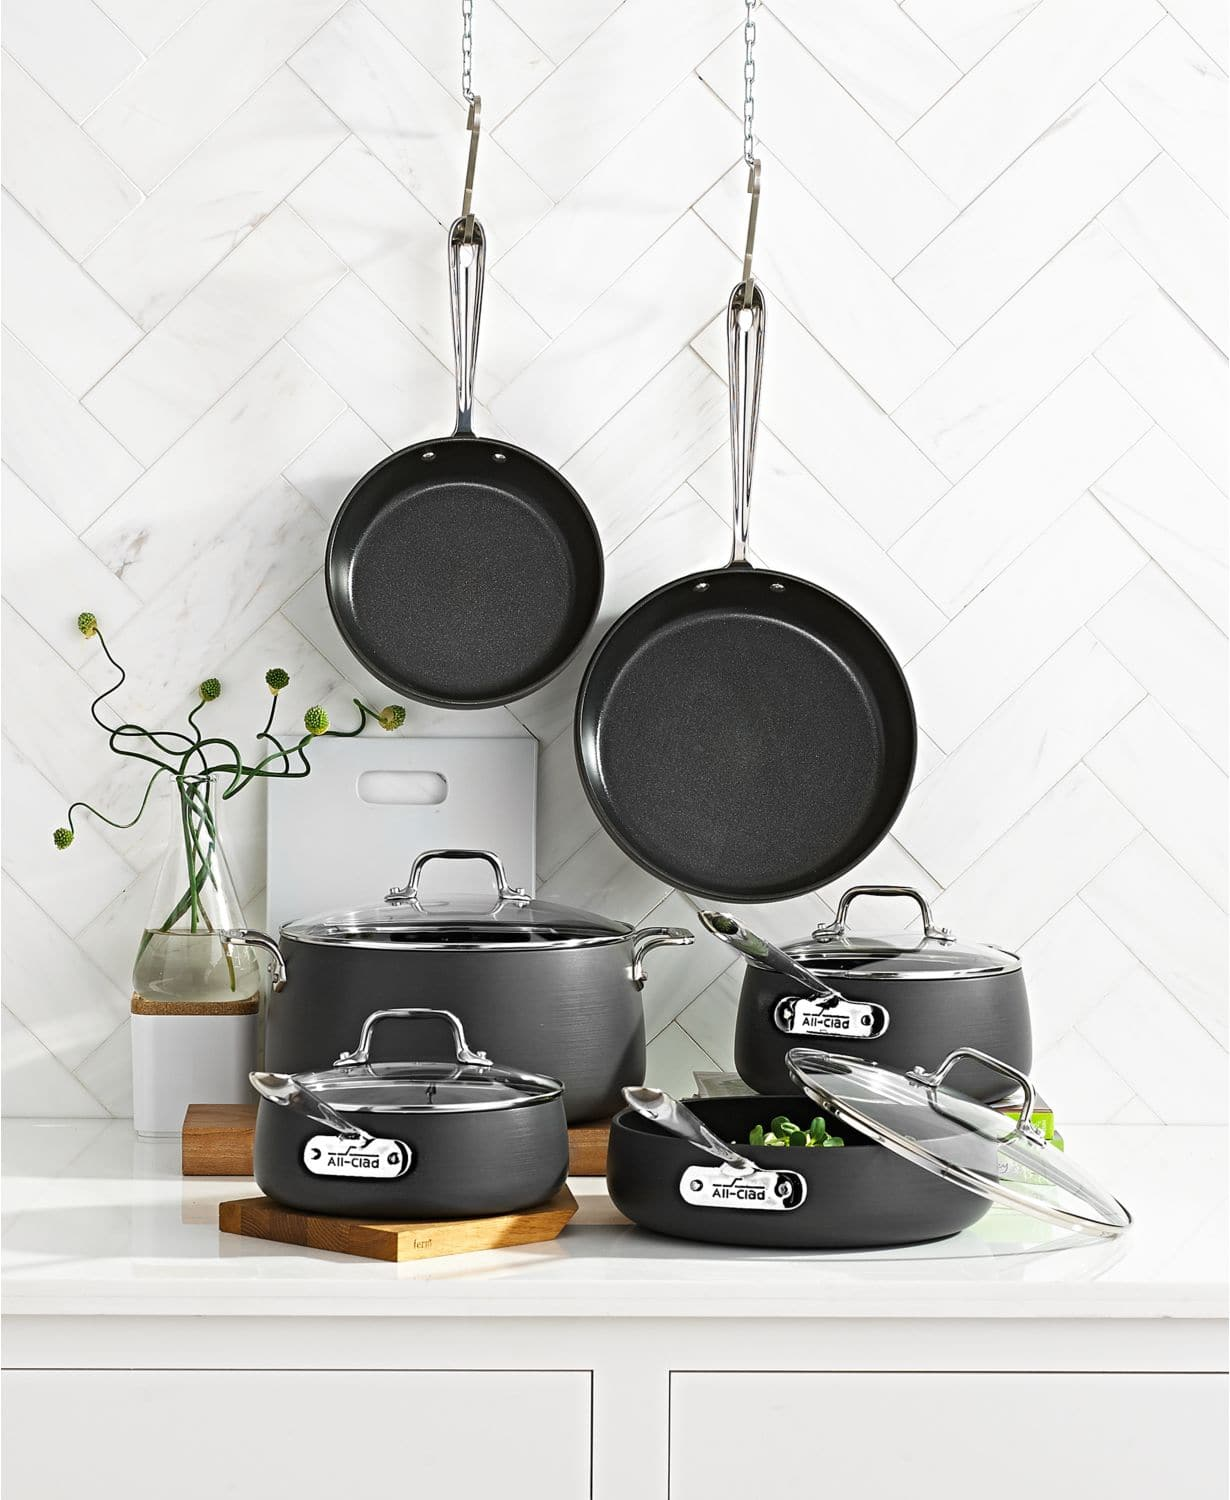 "All-Clad Hard-Anodized 10-Piece Cookware Set + 15"" Oval Baker & Pot Holder Set $319.99 at Macys. Free Ship."